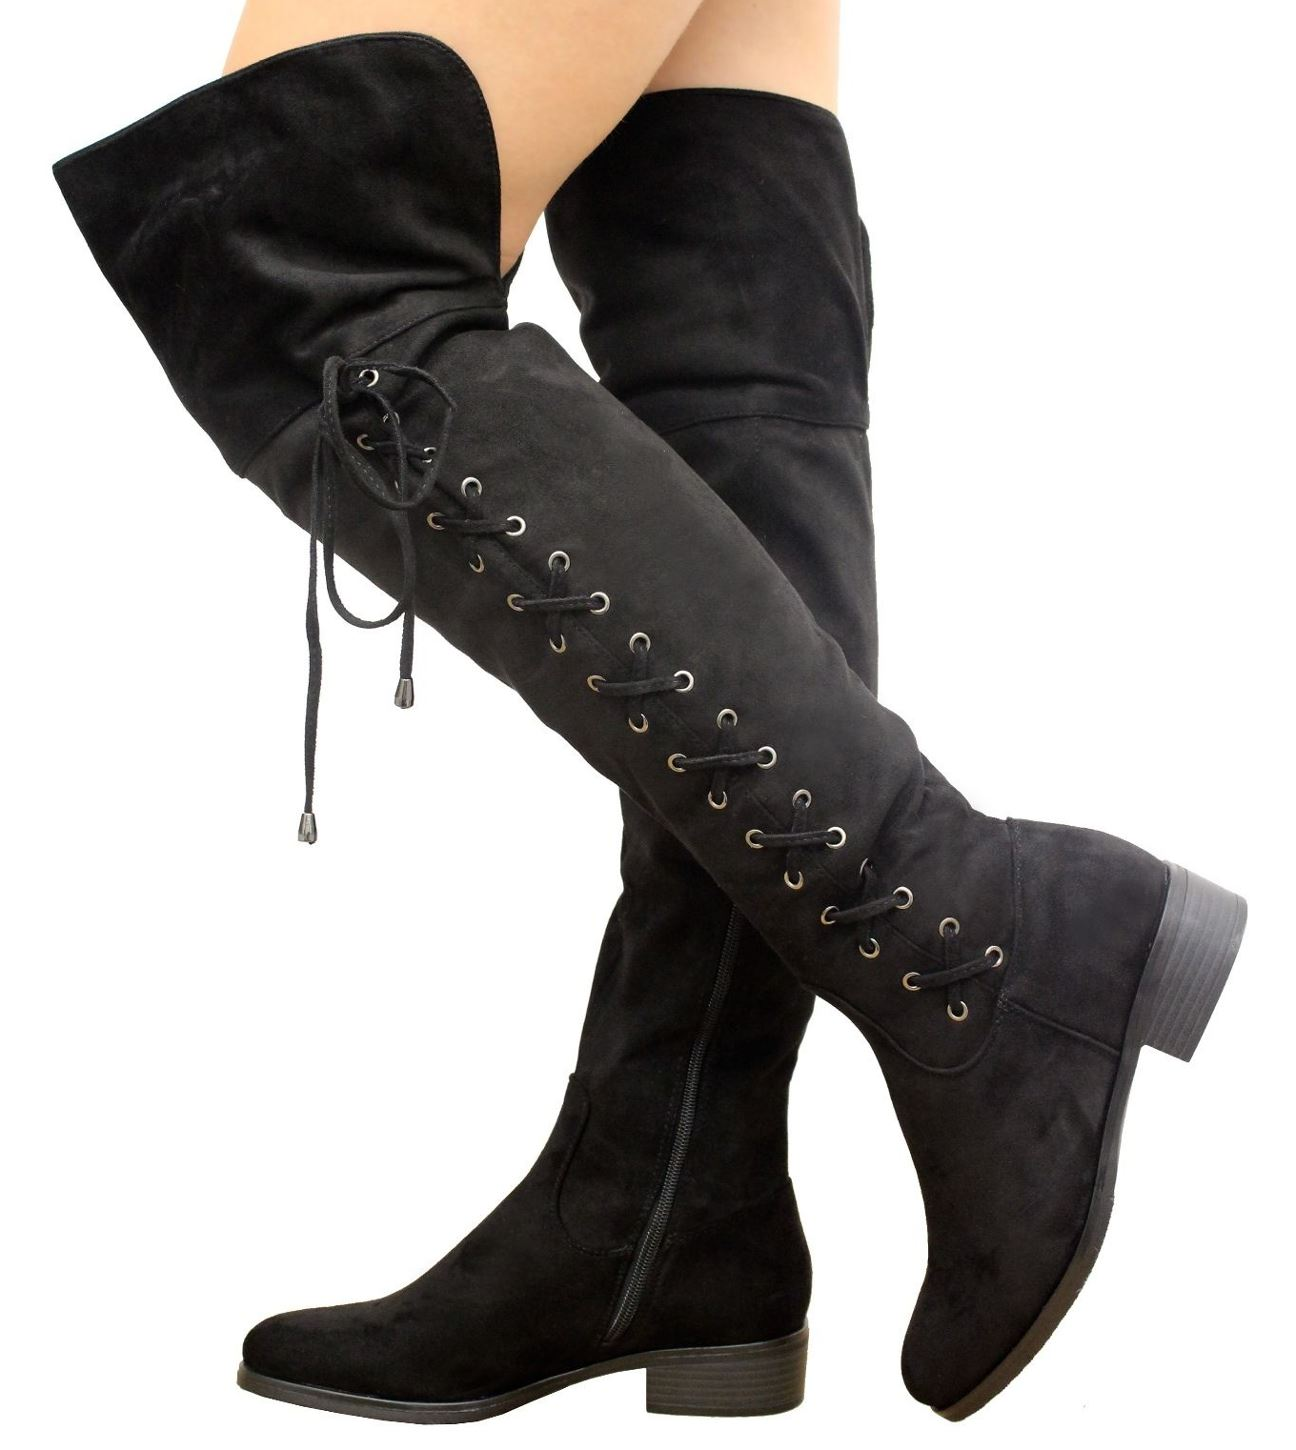 women s thigh high lace up the knee foldover low heel